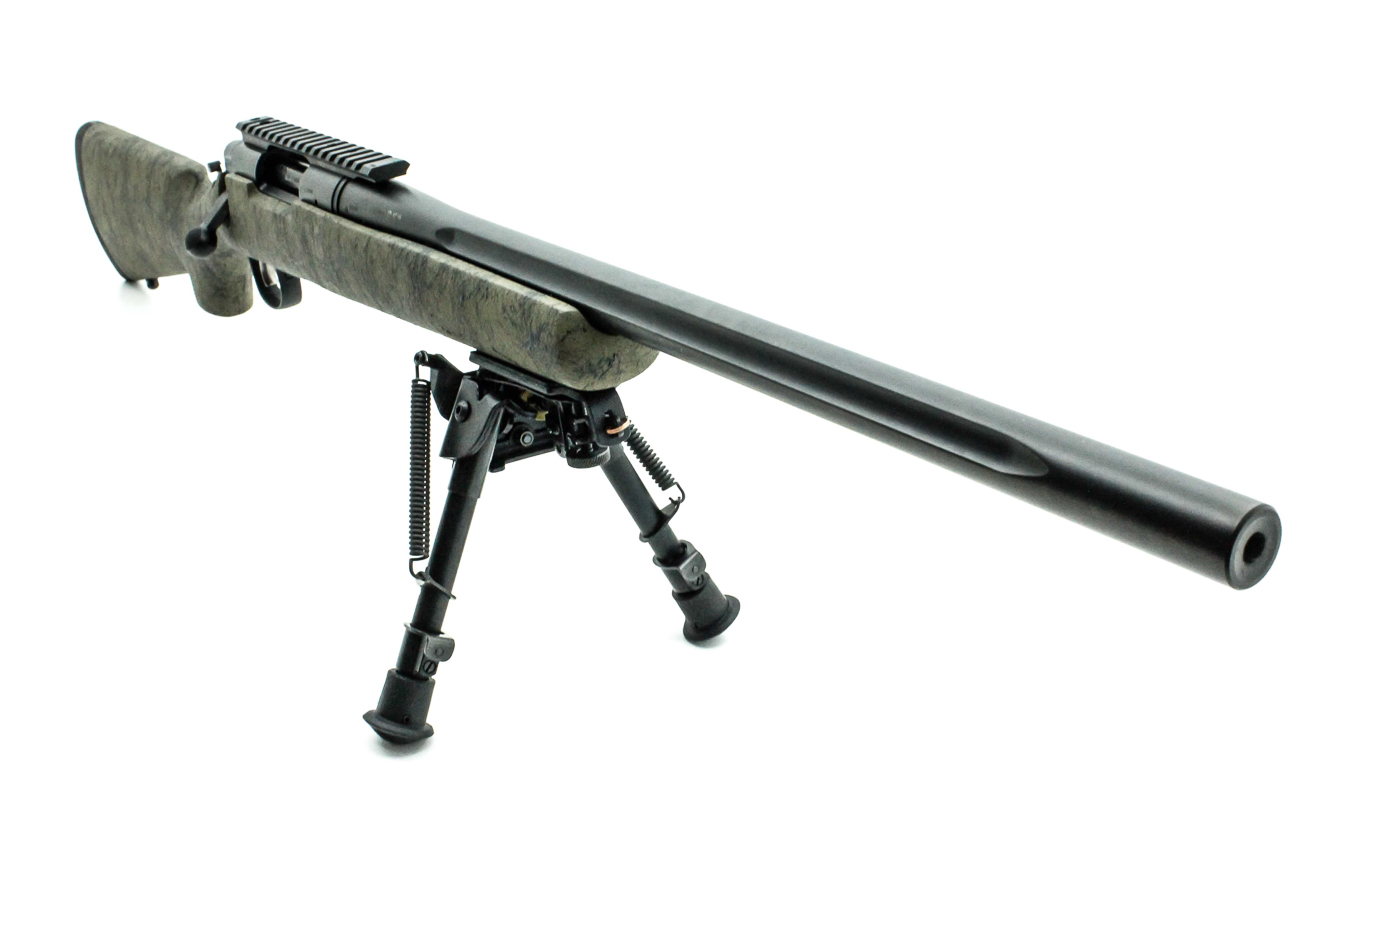 Remington 700 Compact Tactical, .308 Win - Image 6